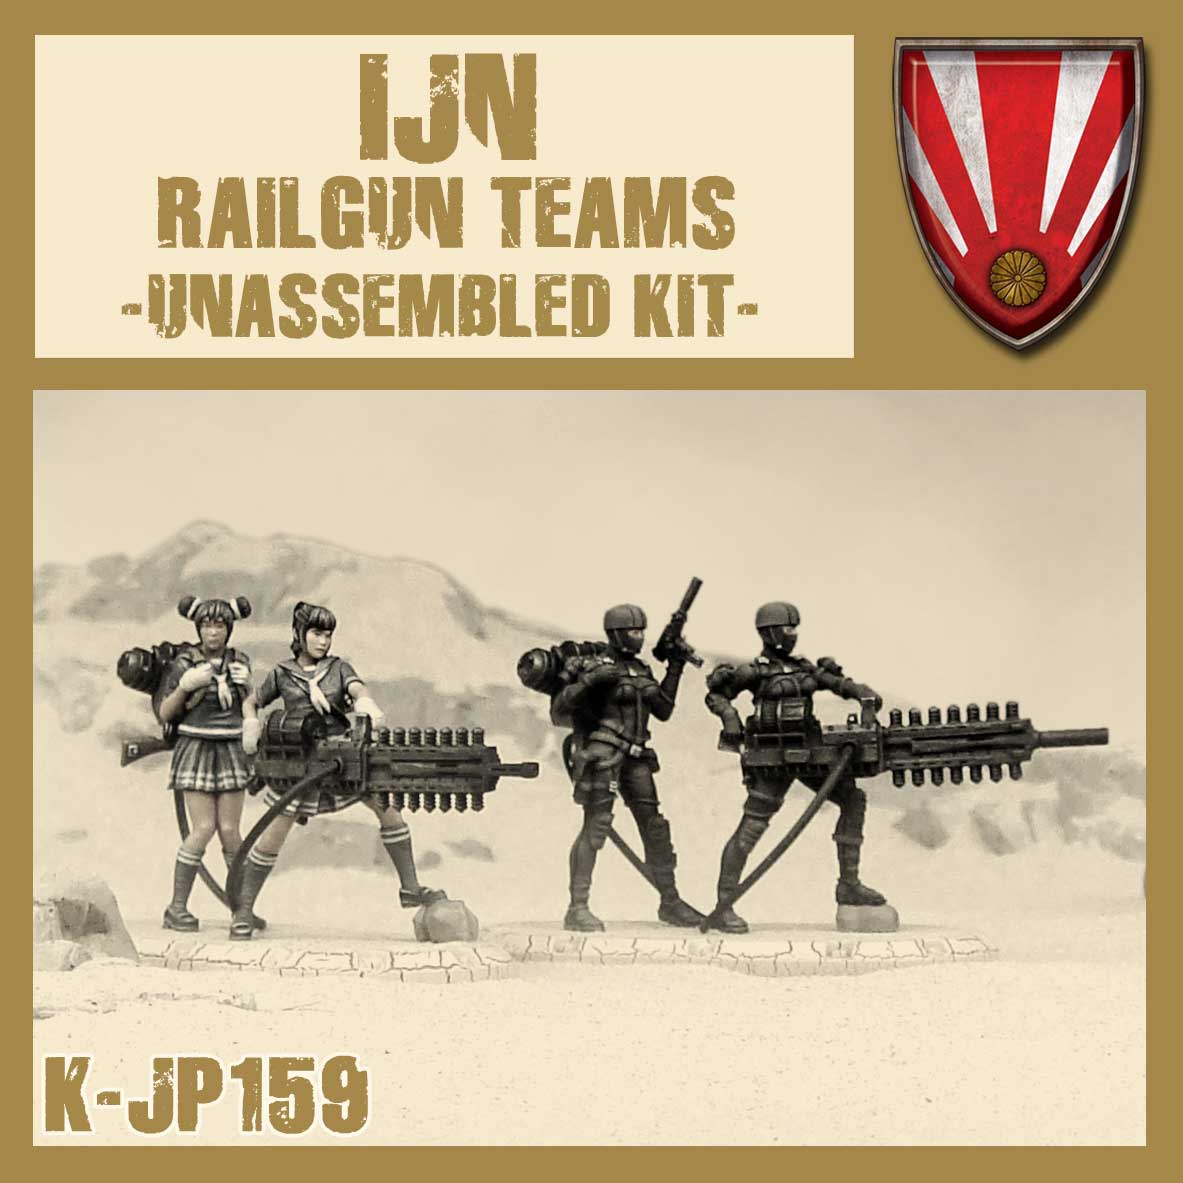 IJN Railgun Teams Kit